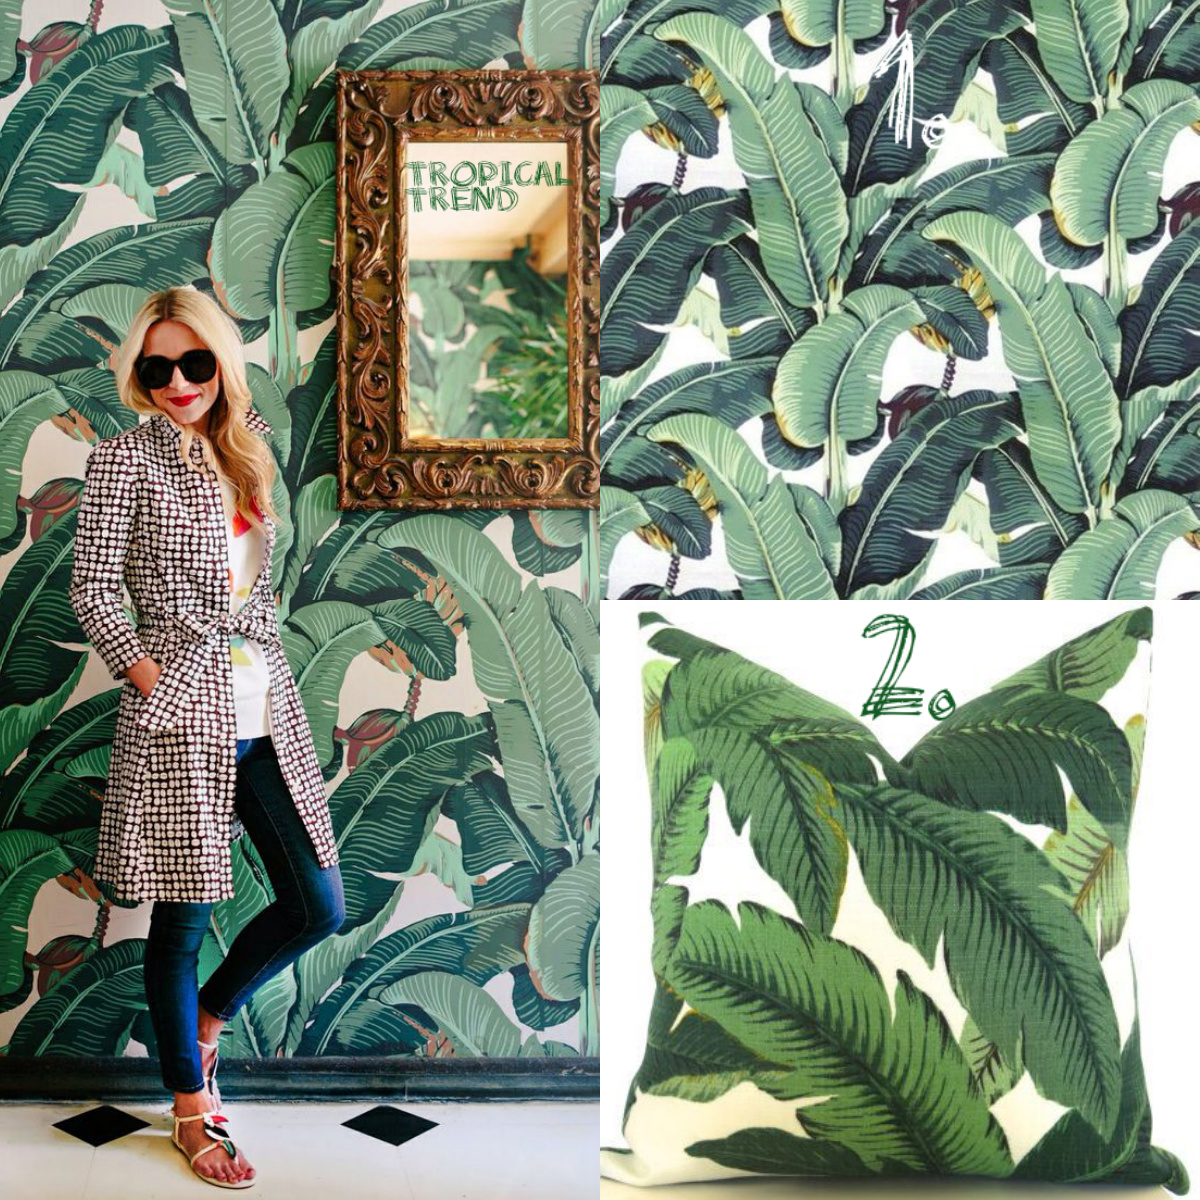 Tropical Trend wallpaper Collage woman pillow